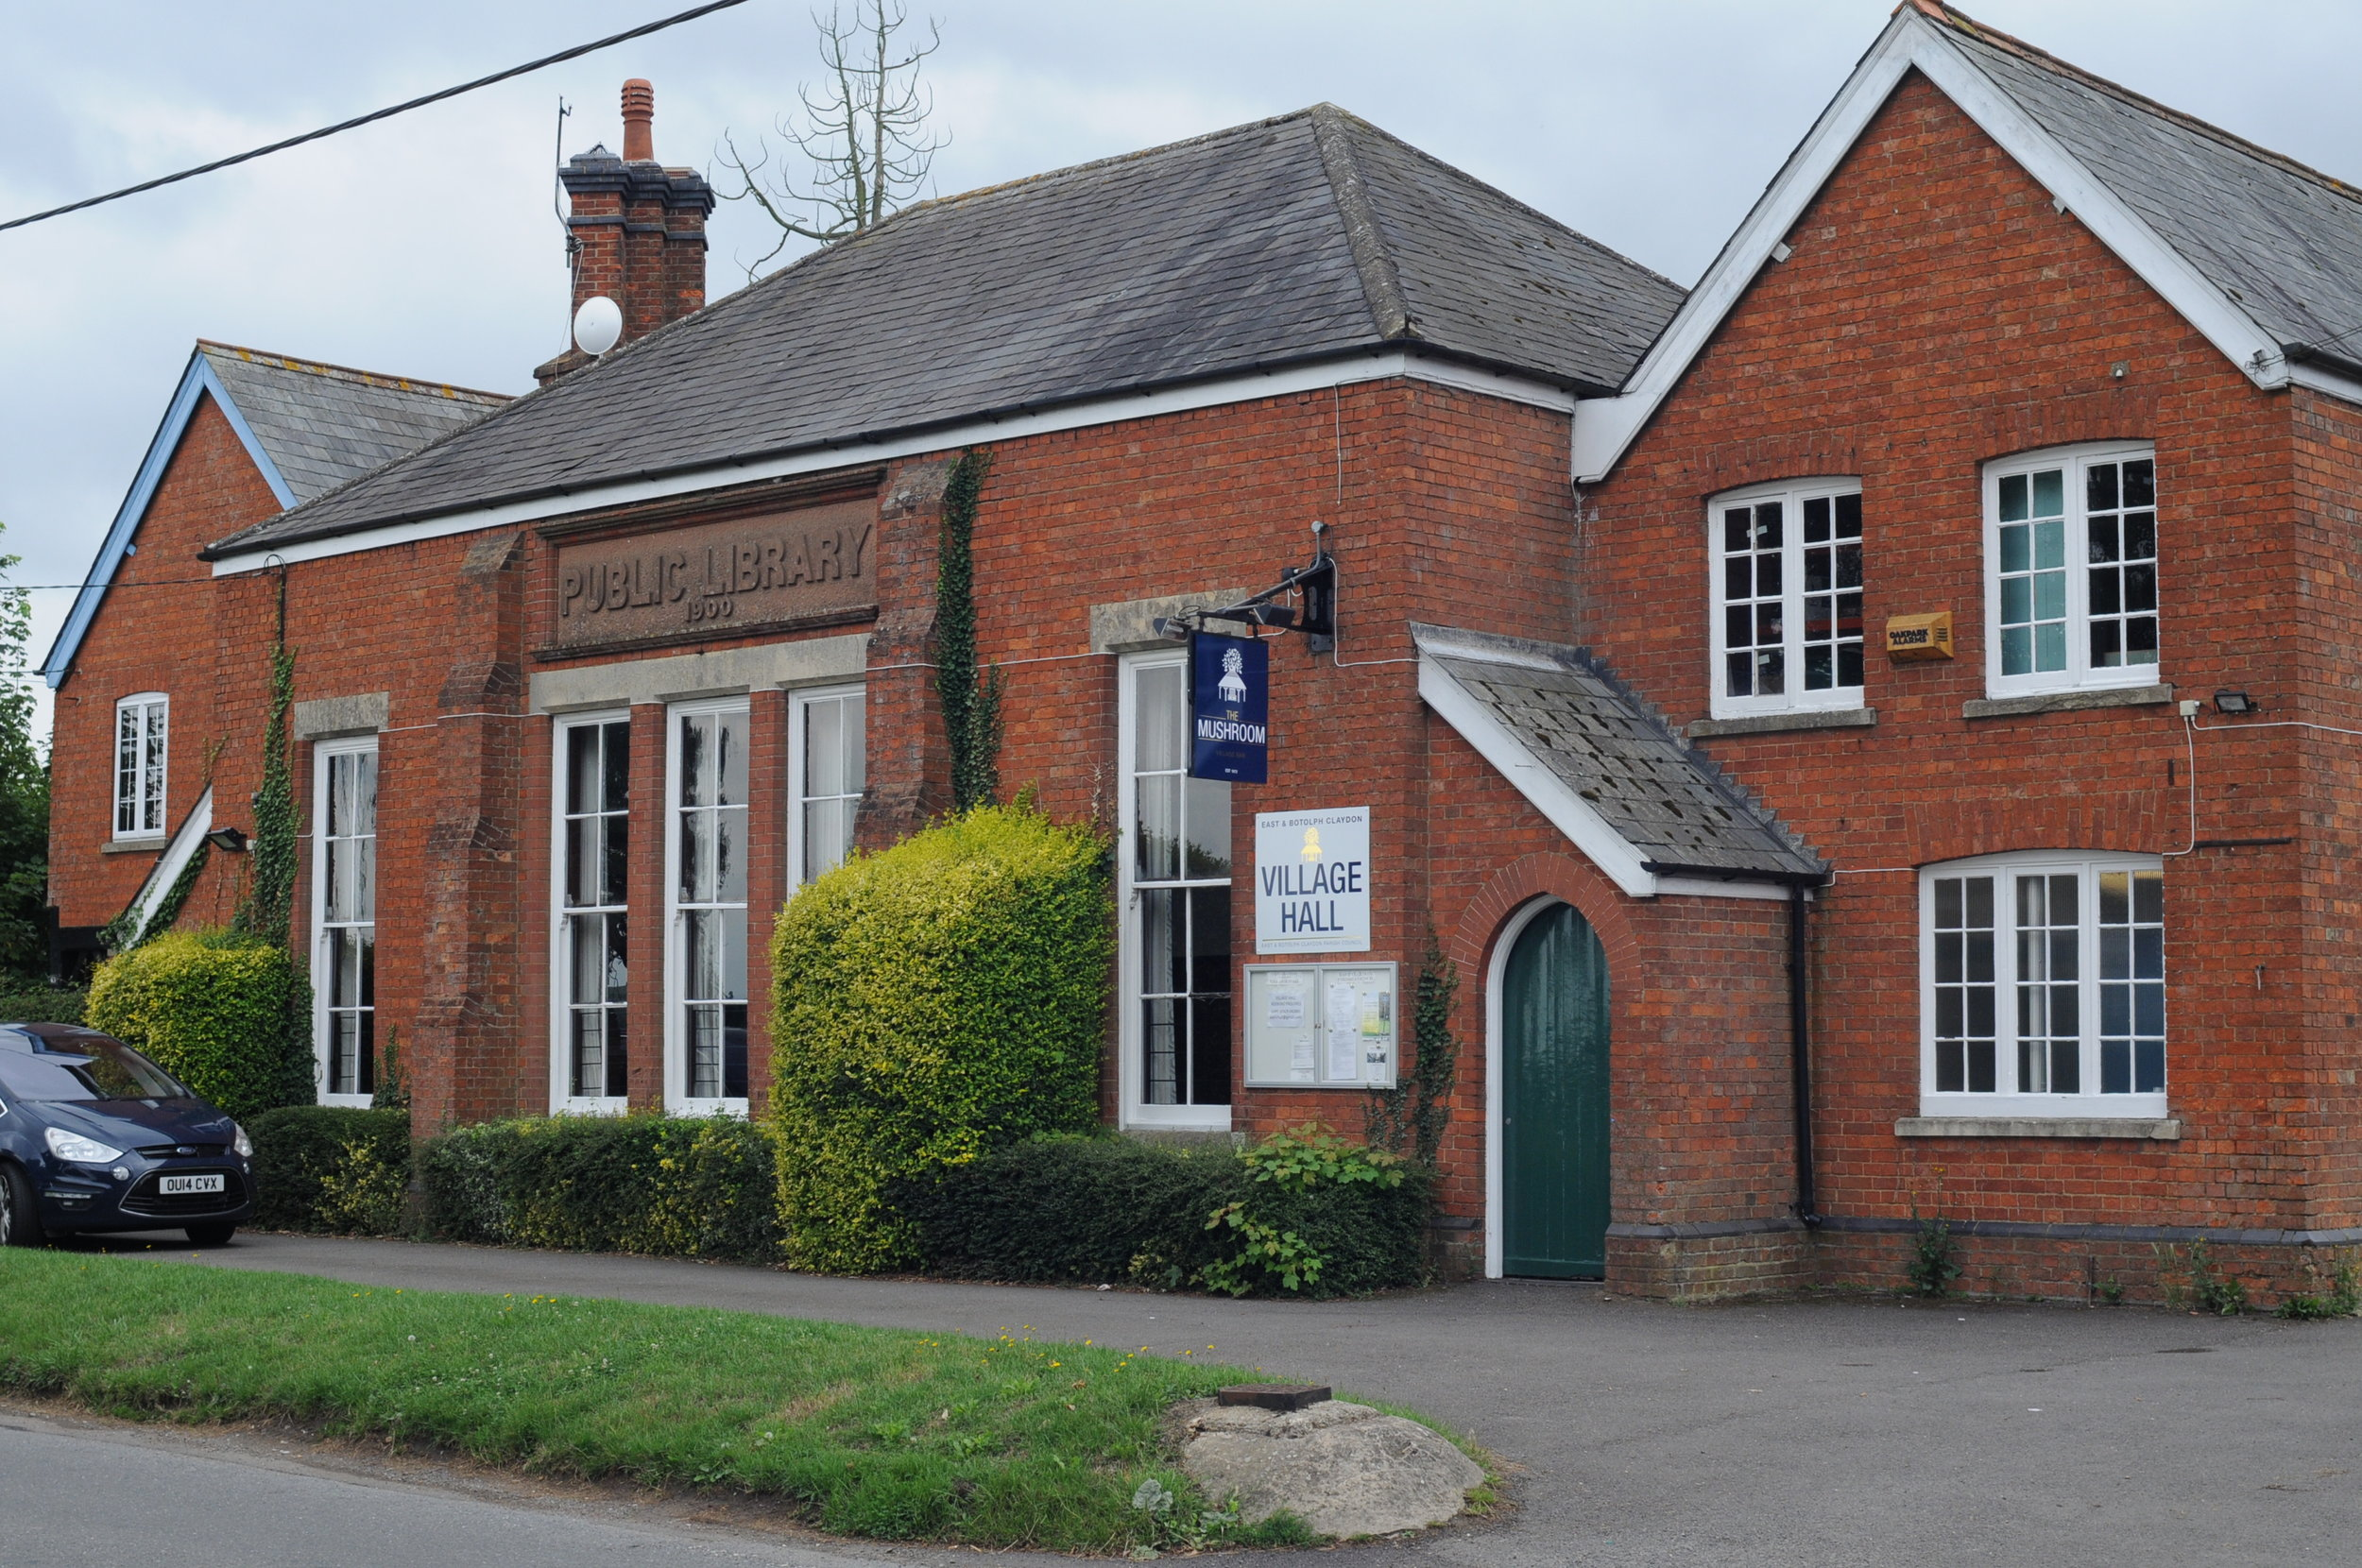 East and Botolph Claydon Village Hall